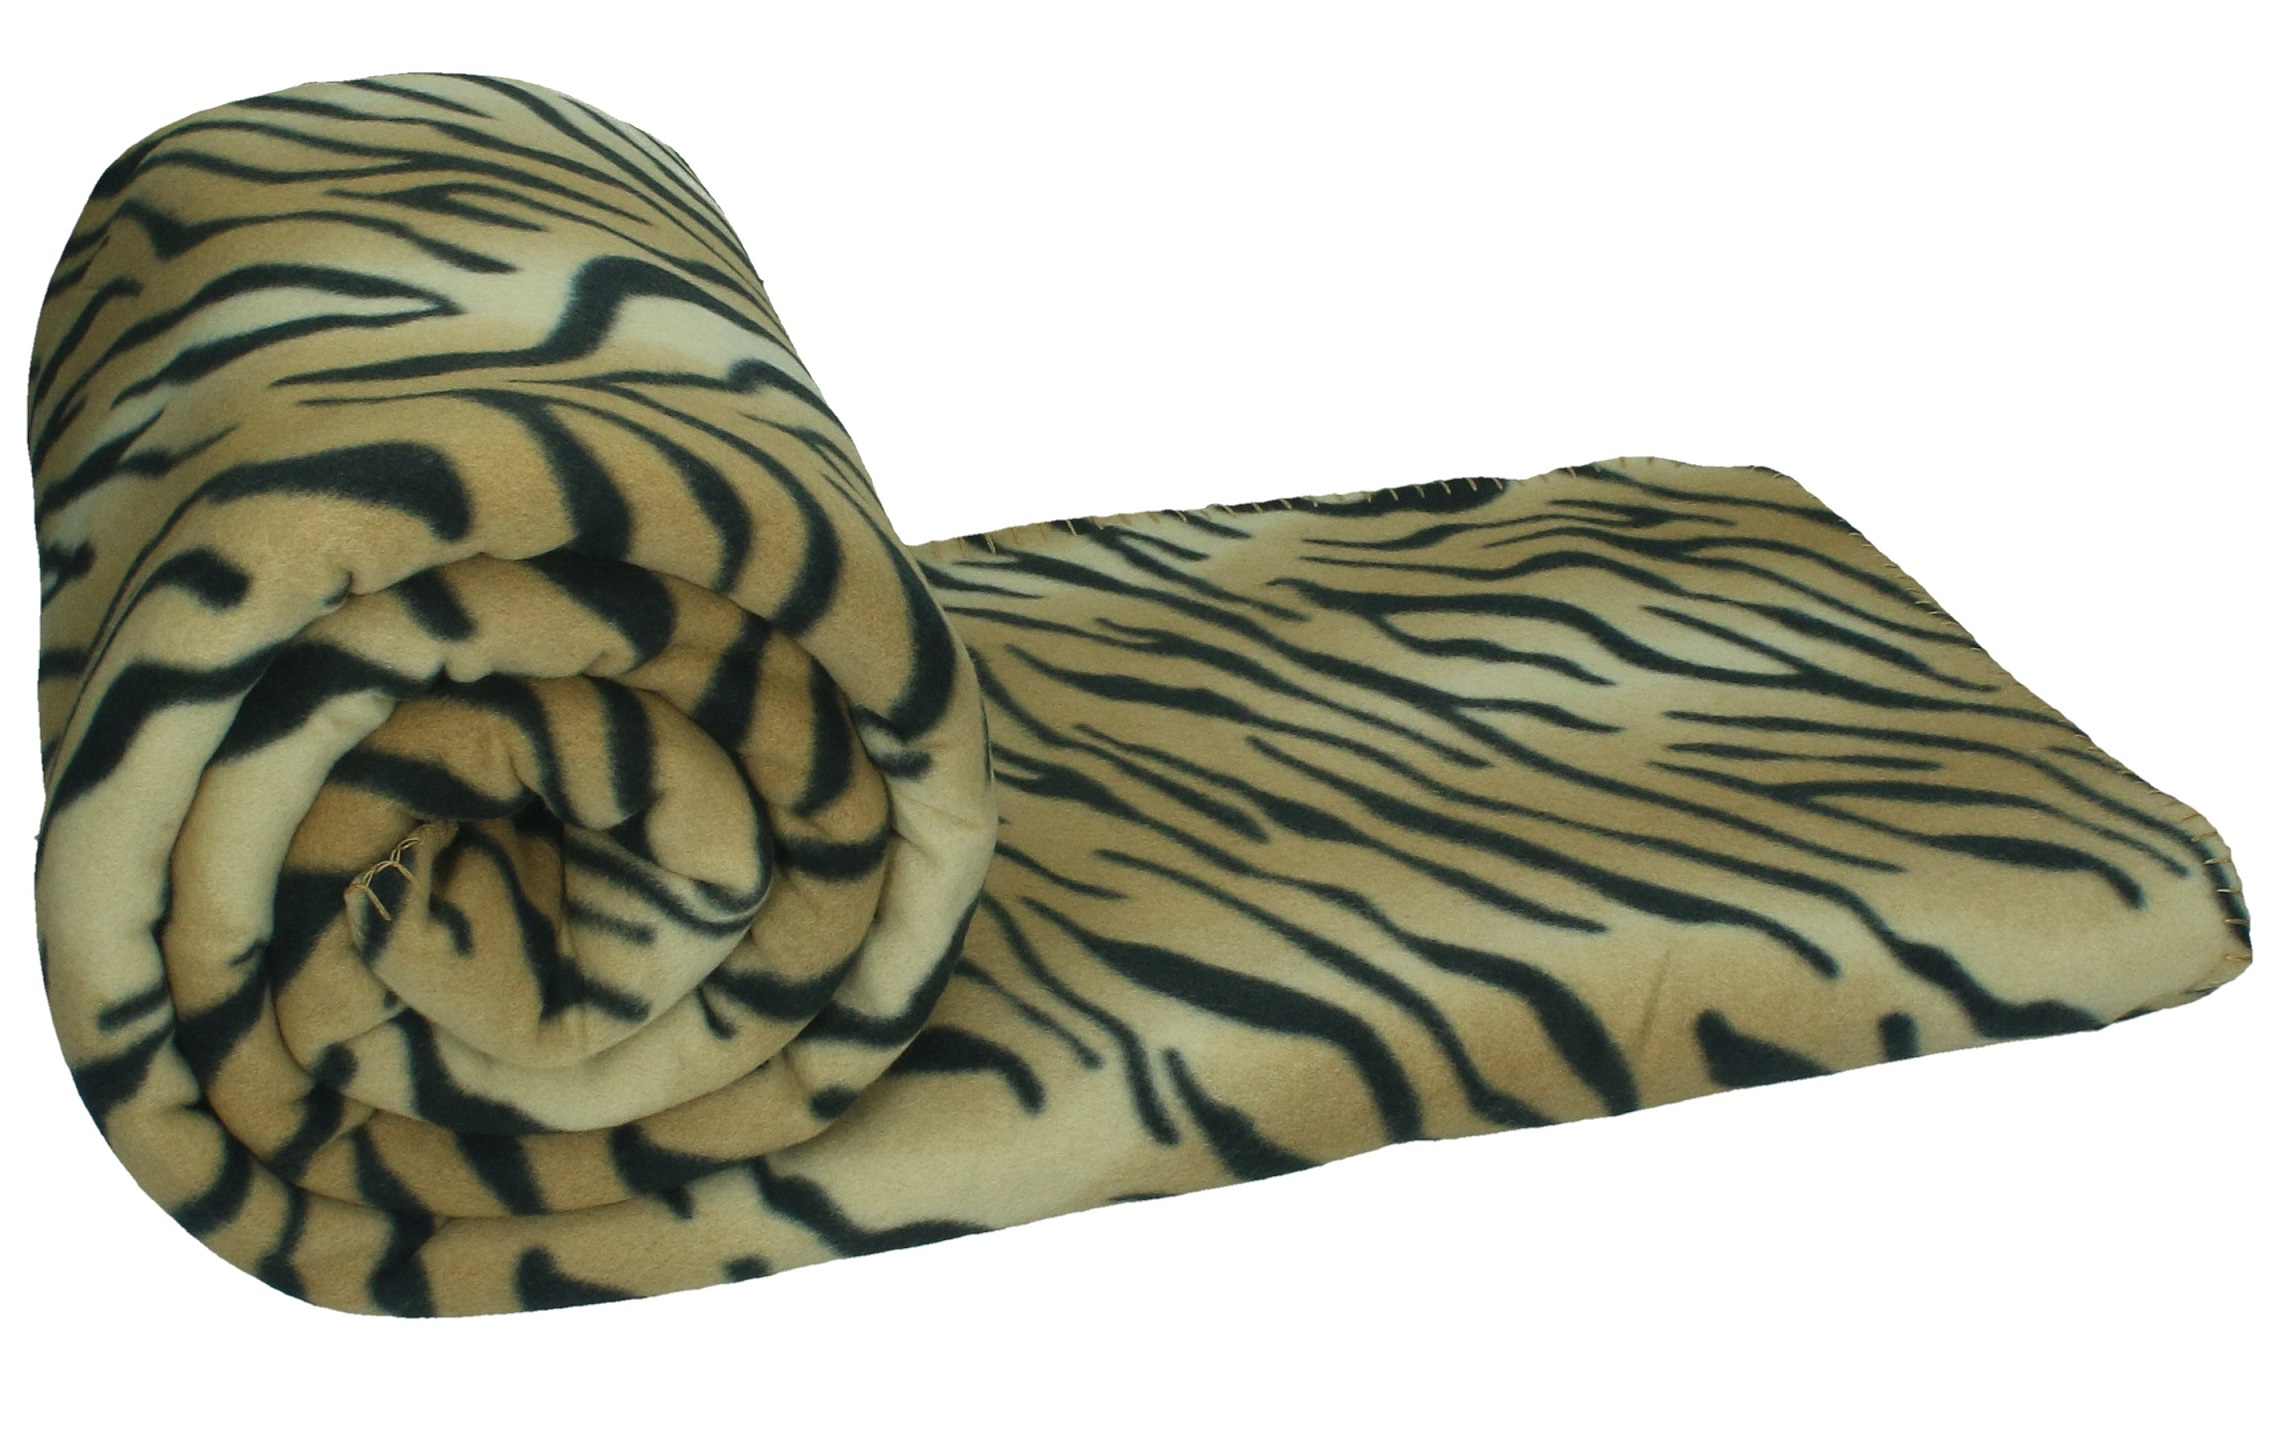 Betz Set of 2 MAXI Luxury Fleece Blankets super soft for sofa or bed 140x190cm